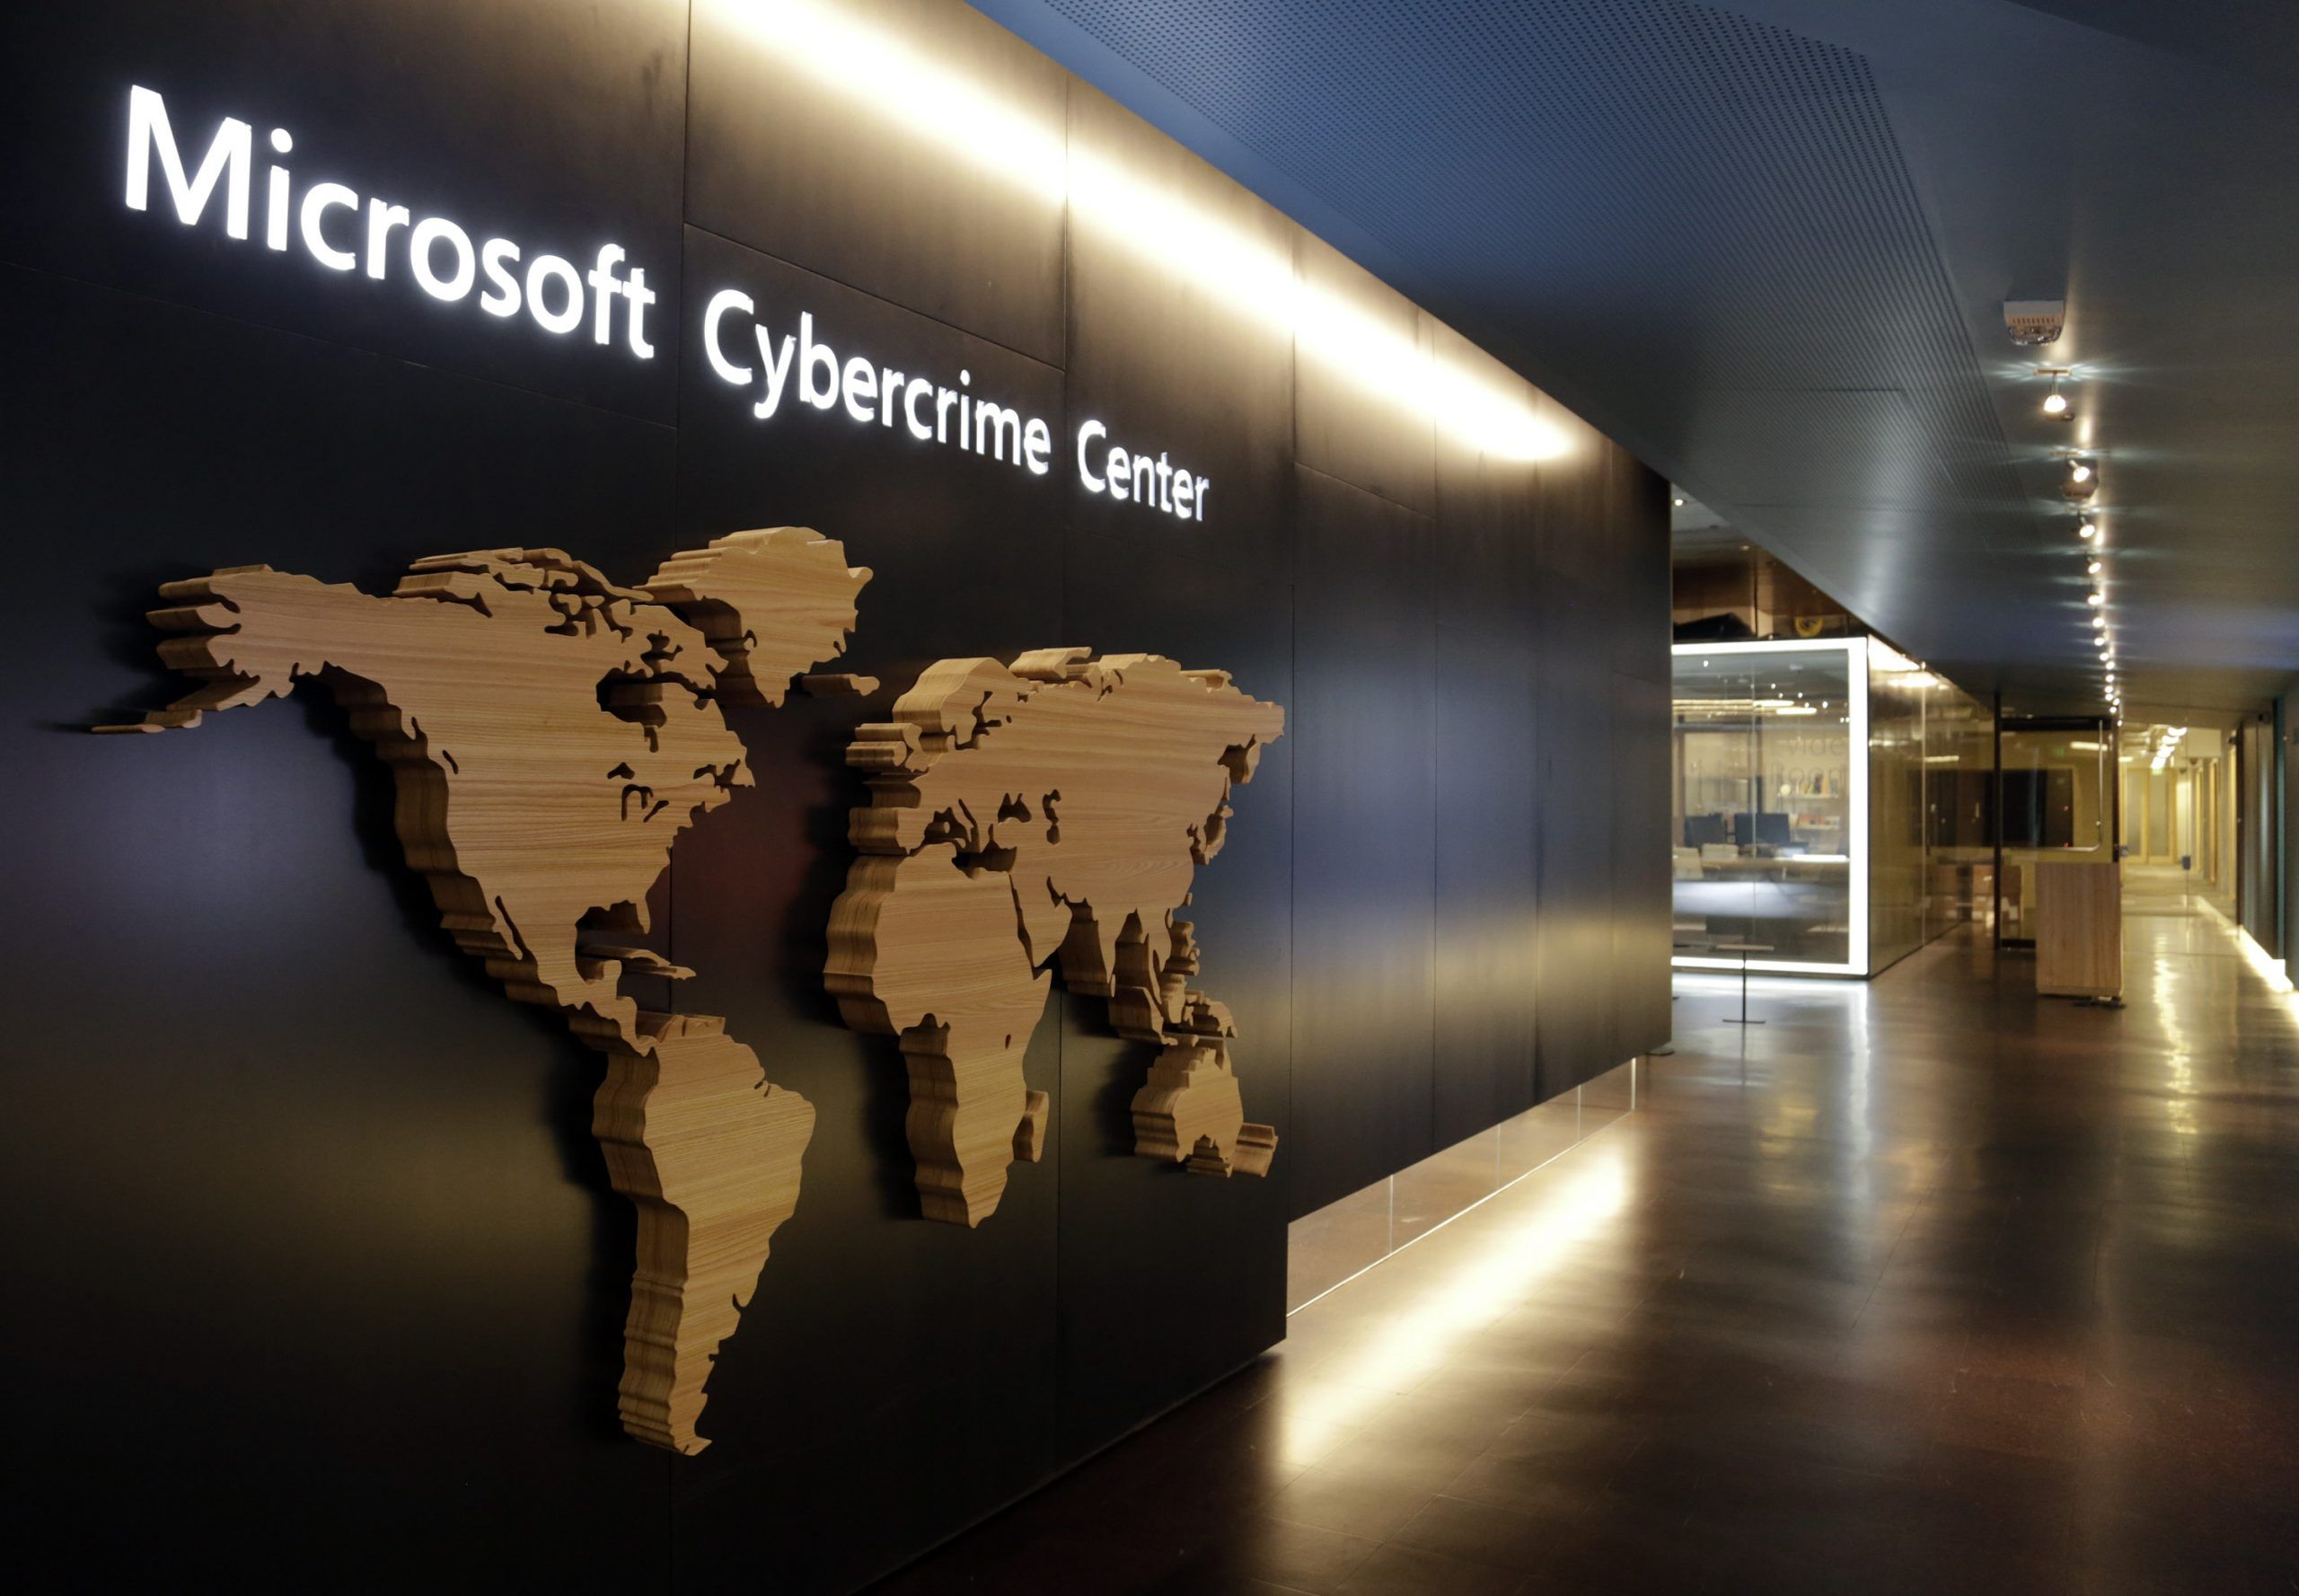 2013-11-14T120000Z_460129693_GM1E9BE1MMR01_RTRMADP_3_MICROSOFT-CYBERCRIME-scaled